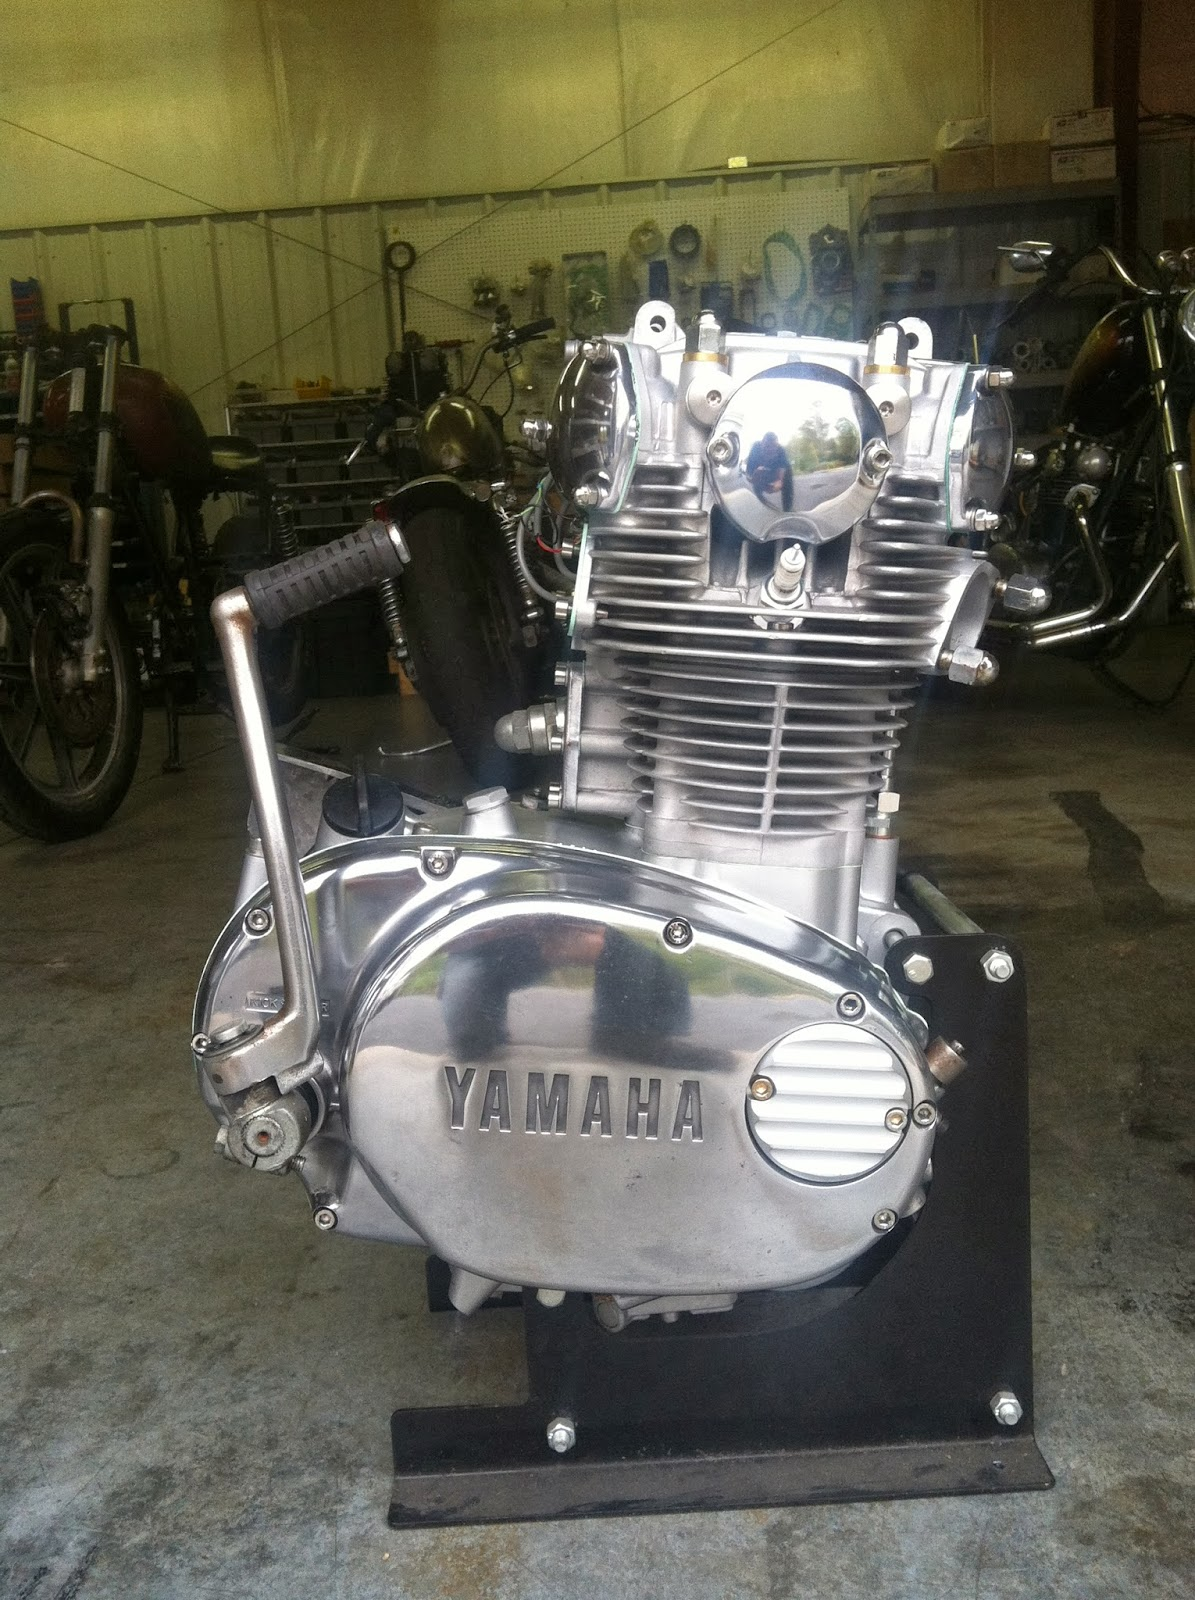 For Sale: 700cc Rephased XS650 Engine - Ready to go! - Hughs